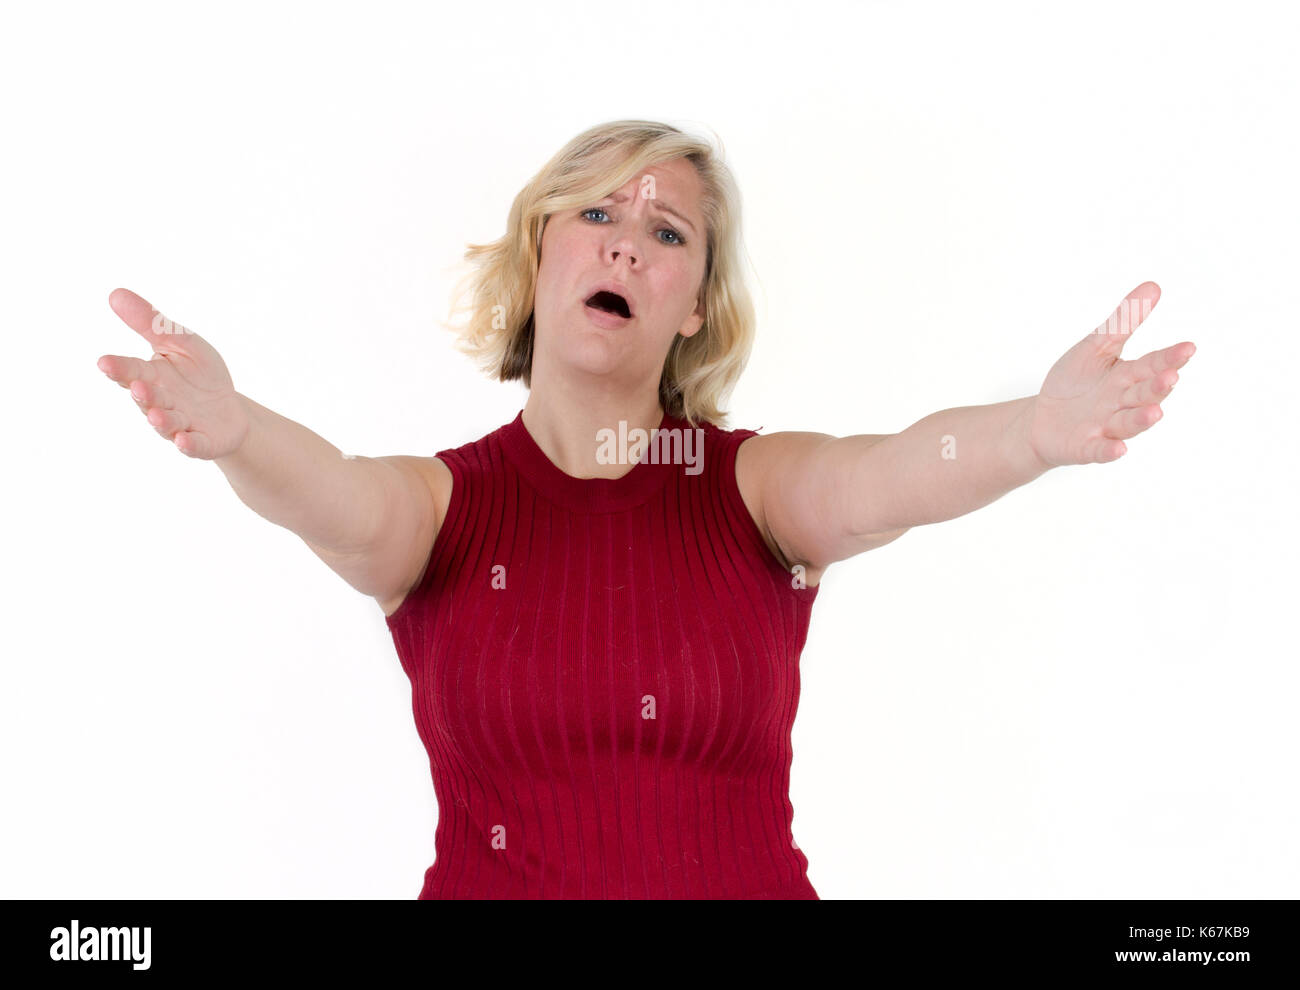 a blond woman in studio background reaches arms and hands out, with a sad or pitying face - Stock Image